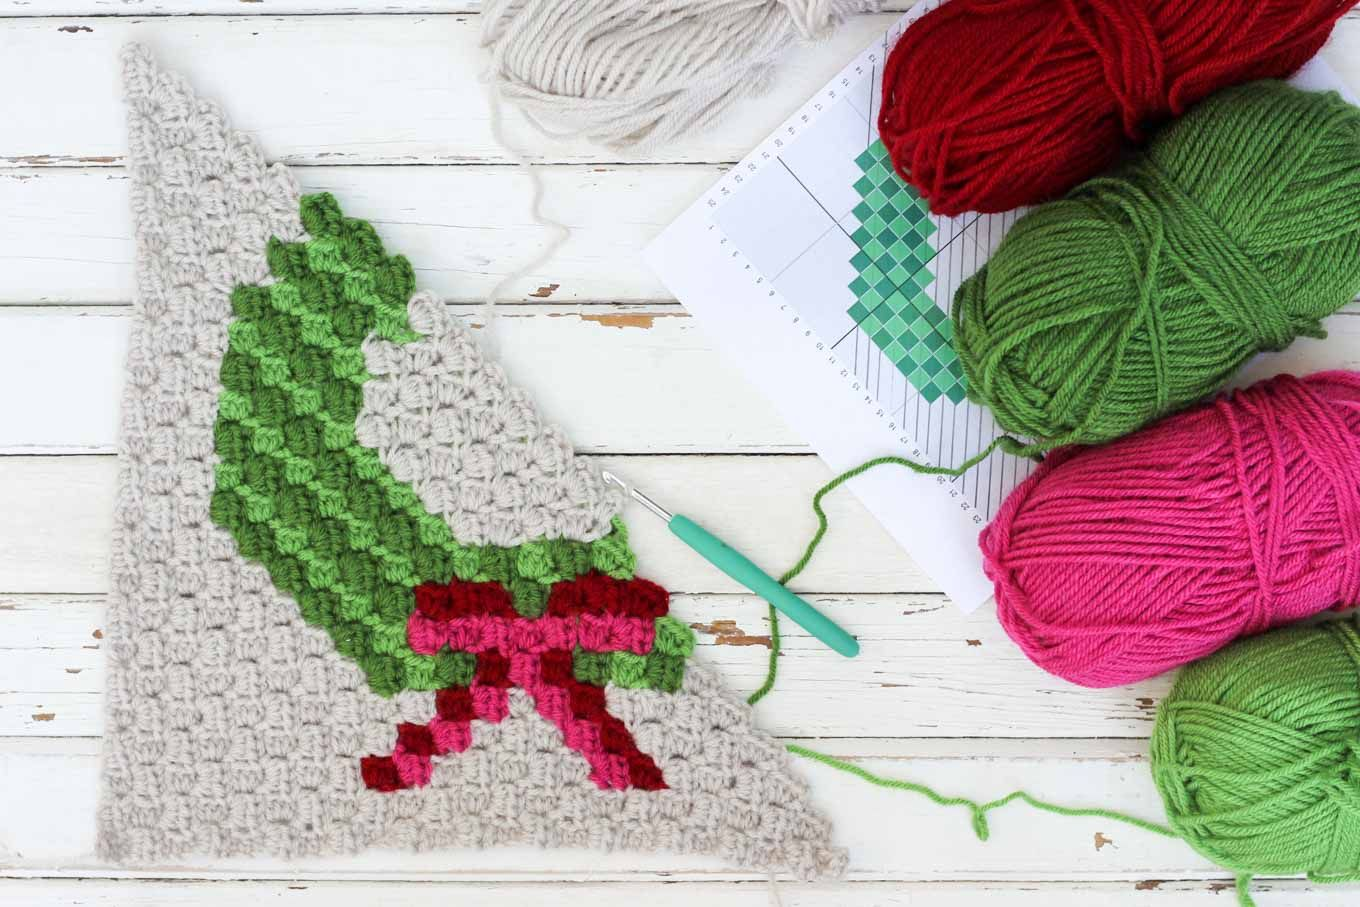 Old Fashioned Corner Crochet Pattern Image - Sewing Pattern for ...